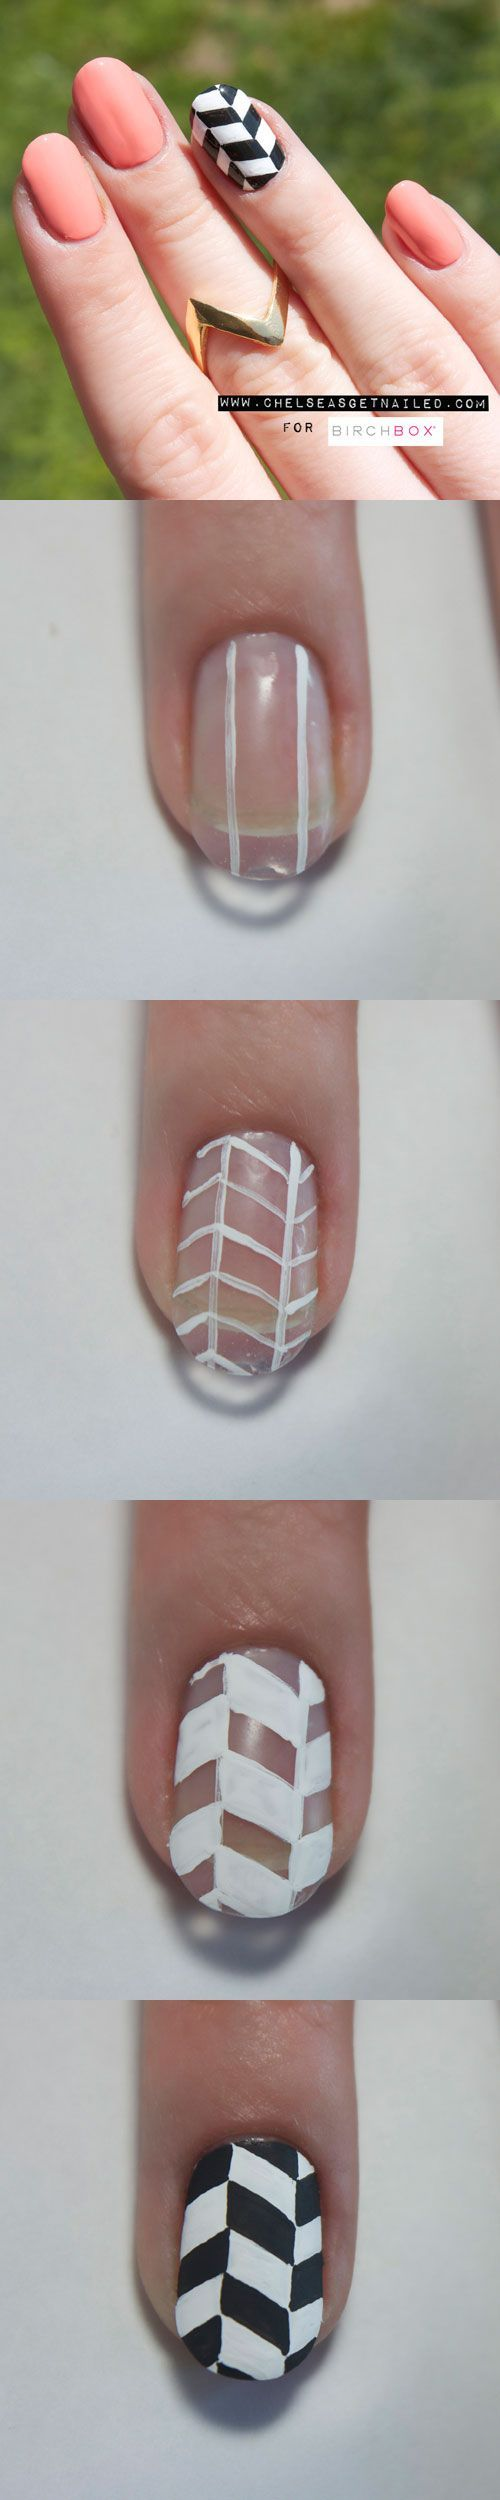 How To: Chevron Nail Art. I love chevron patterns, but I'd never be able to pull this off on my right hand. Thank God mismatched nails are trending! Maybe a chevron accent on the left, and some simple stripes or dots on the left...